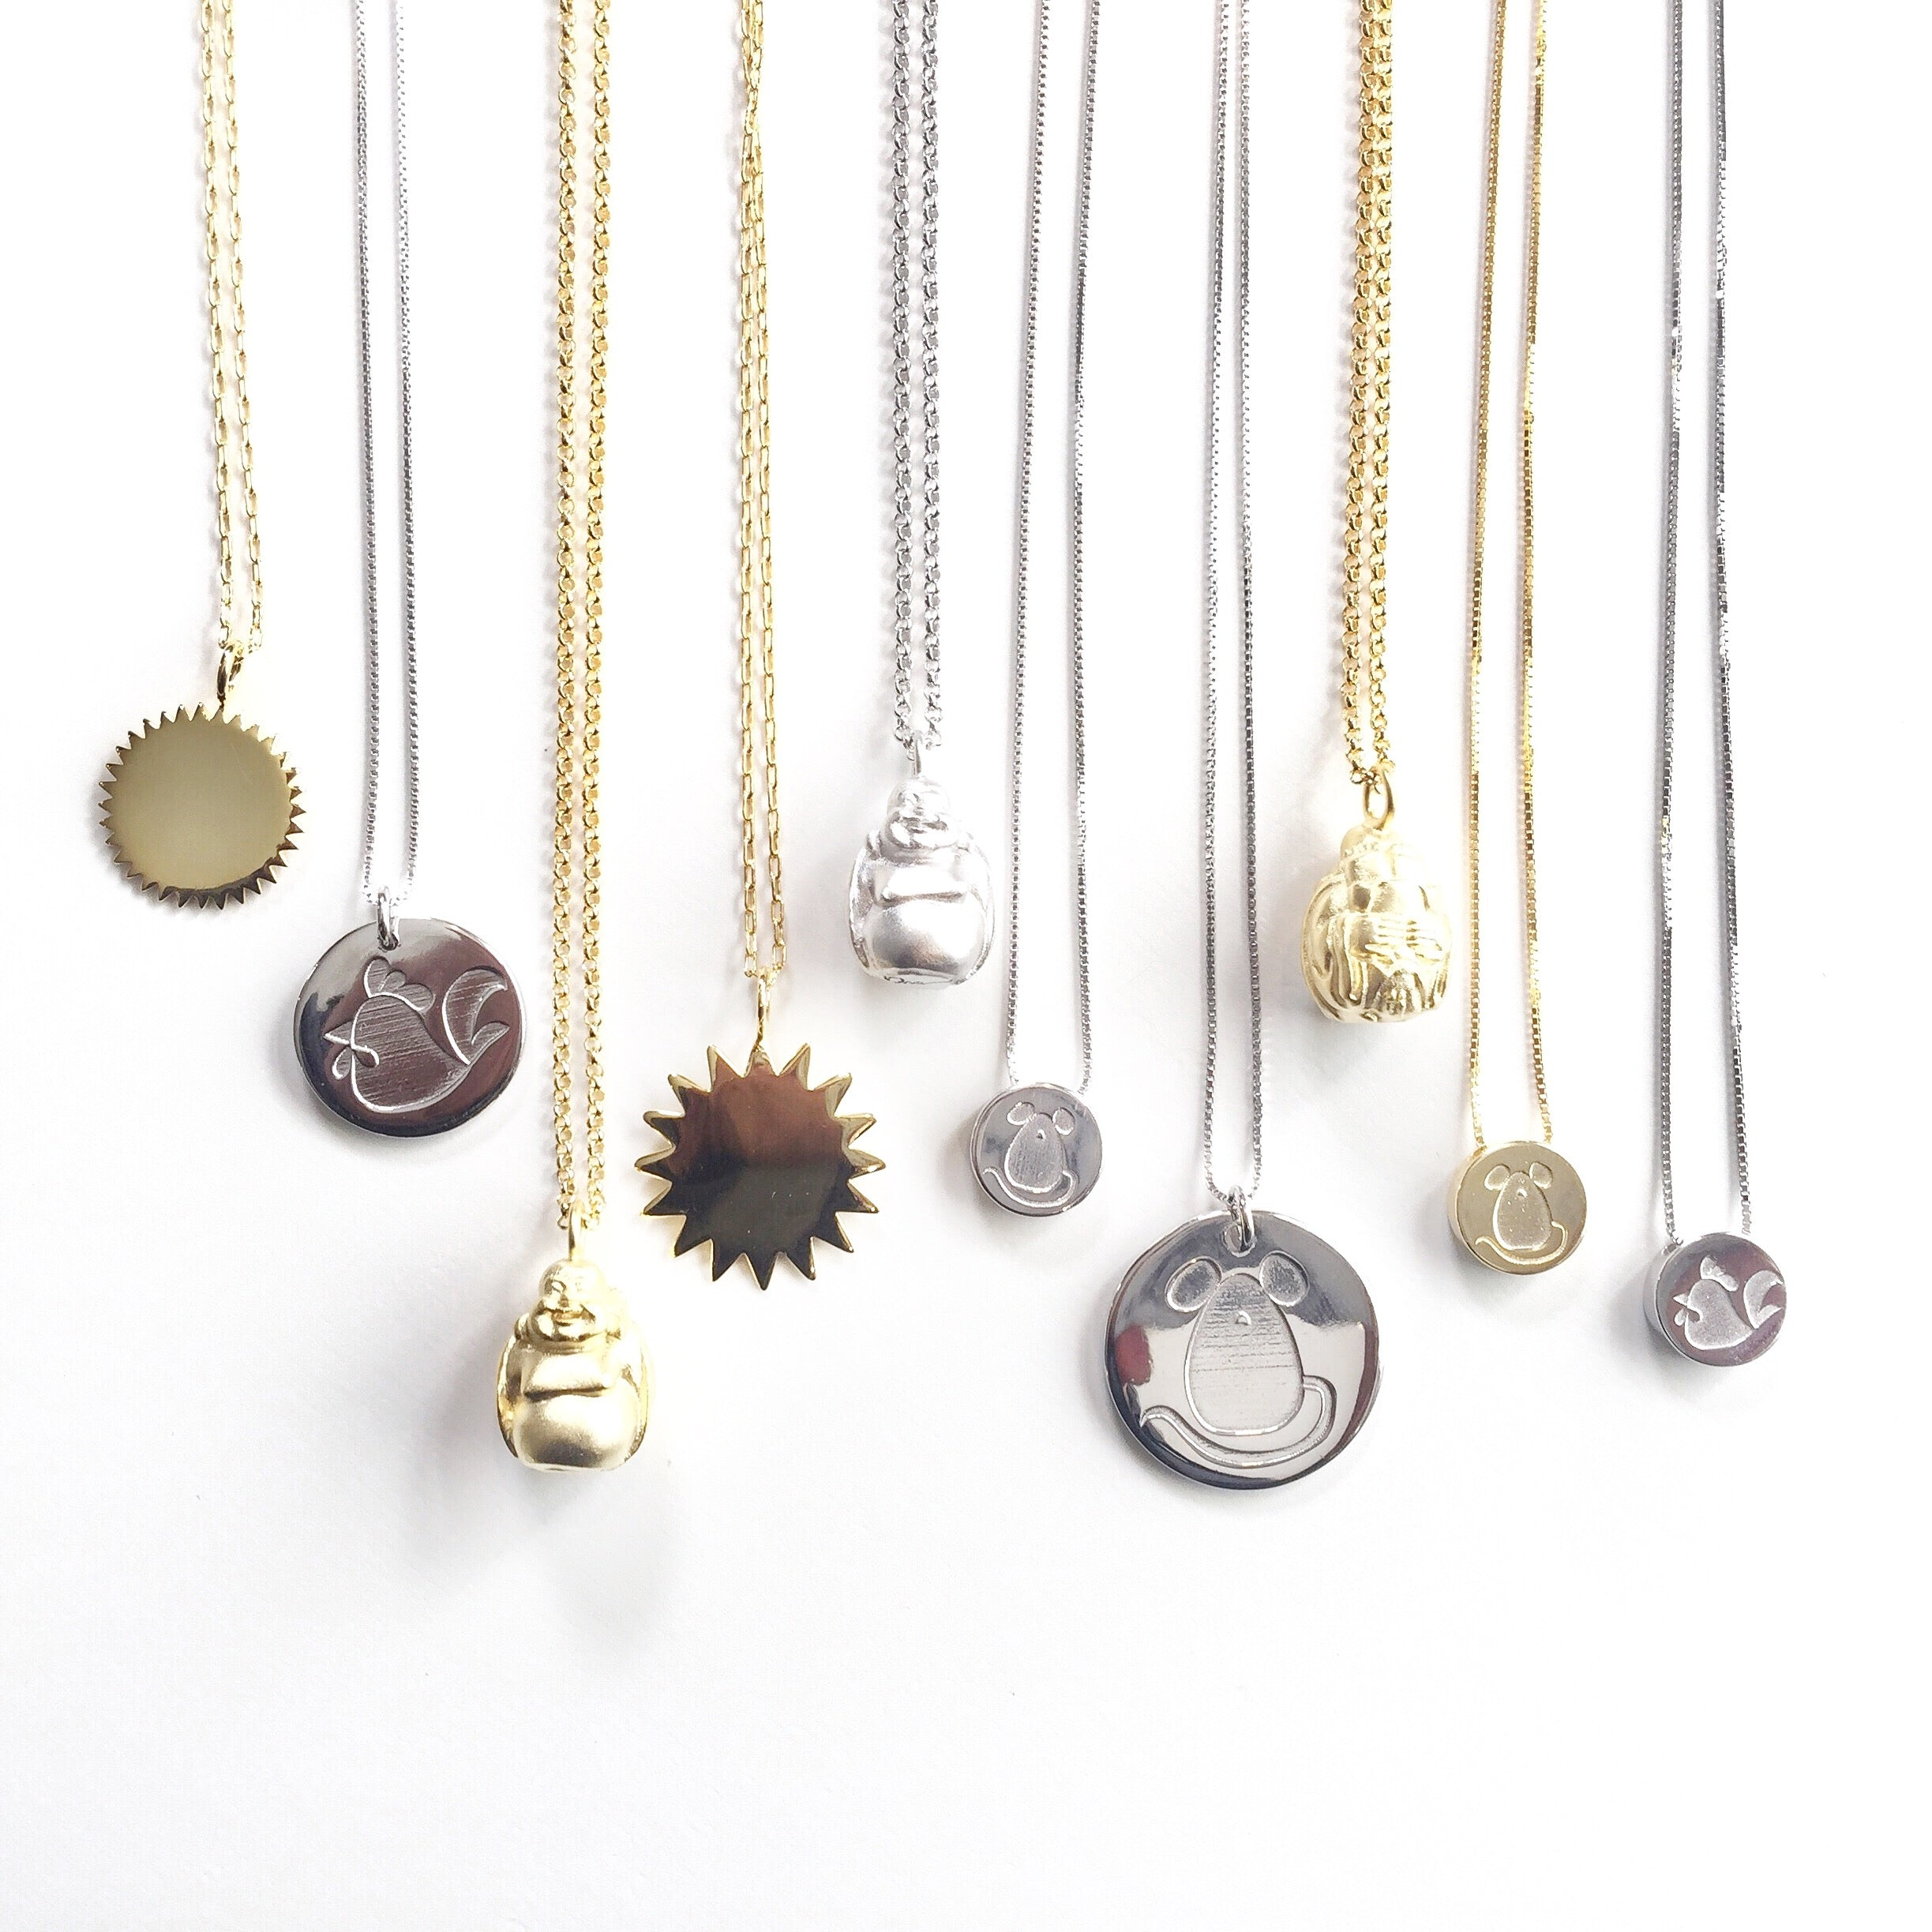 Sunburst, Buddha, Chinese New Year Necklaces hanging together